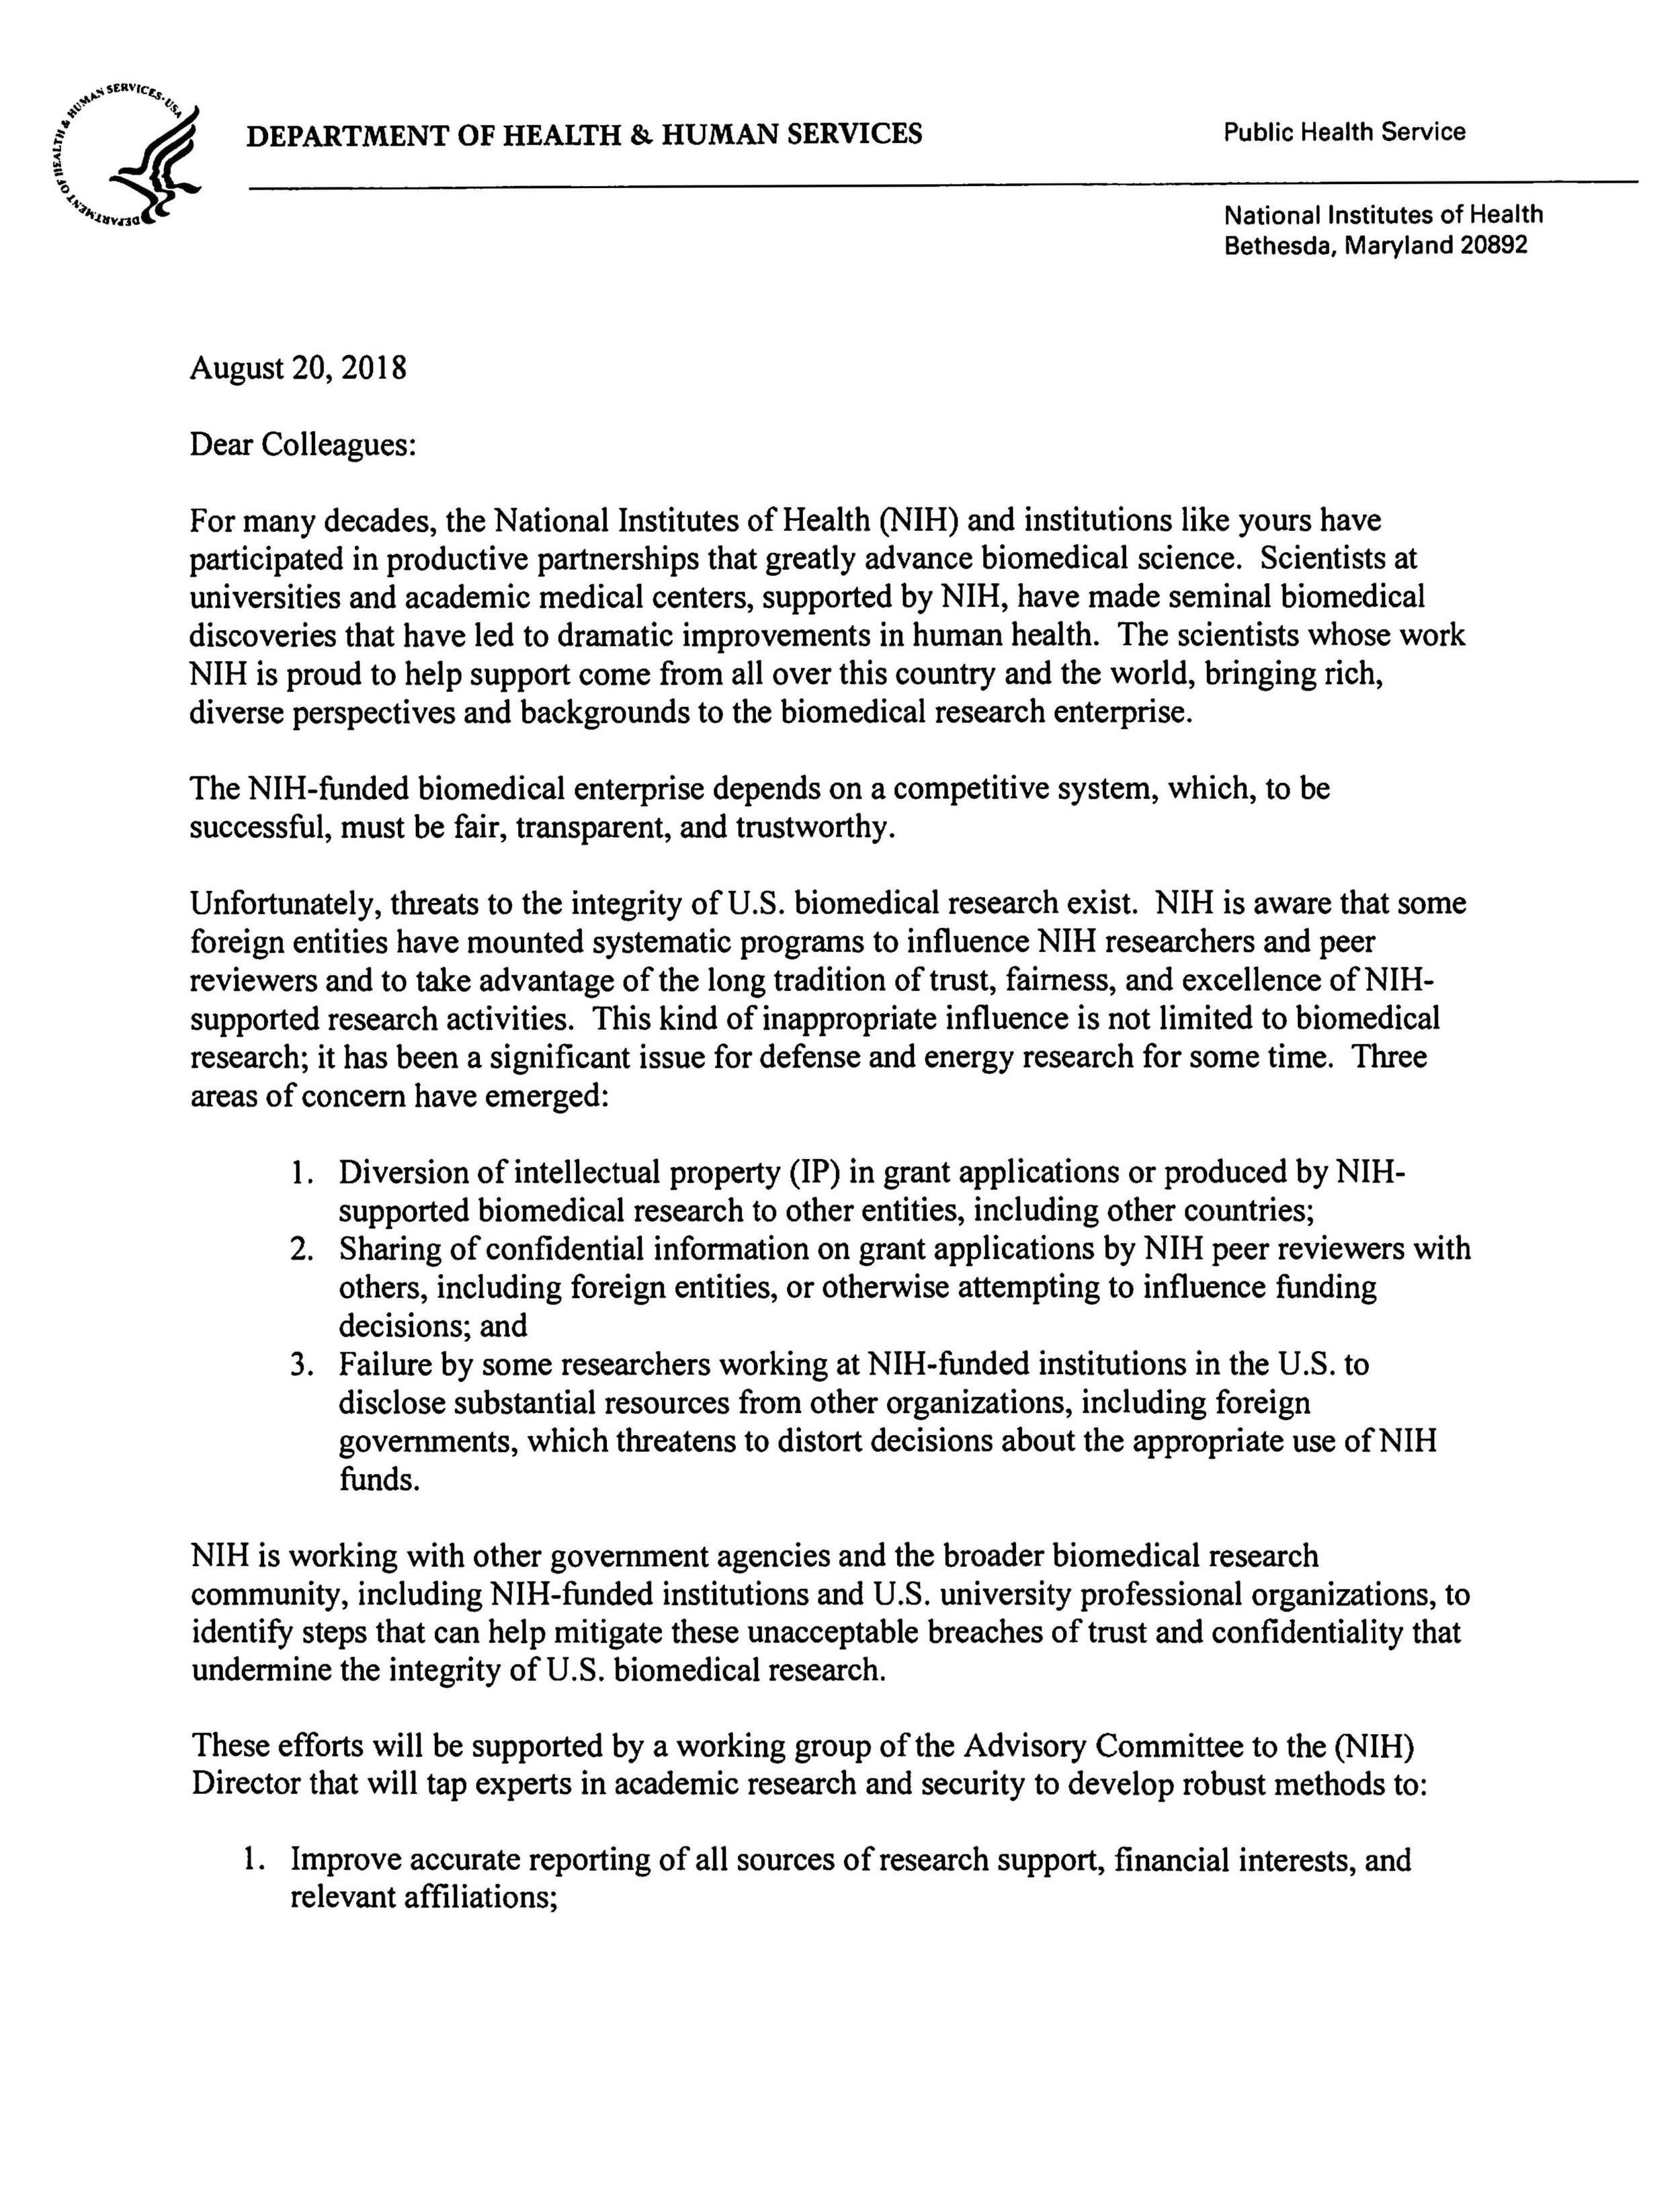 NIH Foreign Influence Letter to Grantees 08-20-18 jpeg_Page_1.jpg